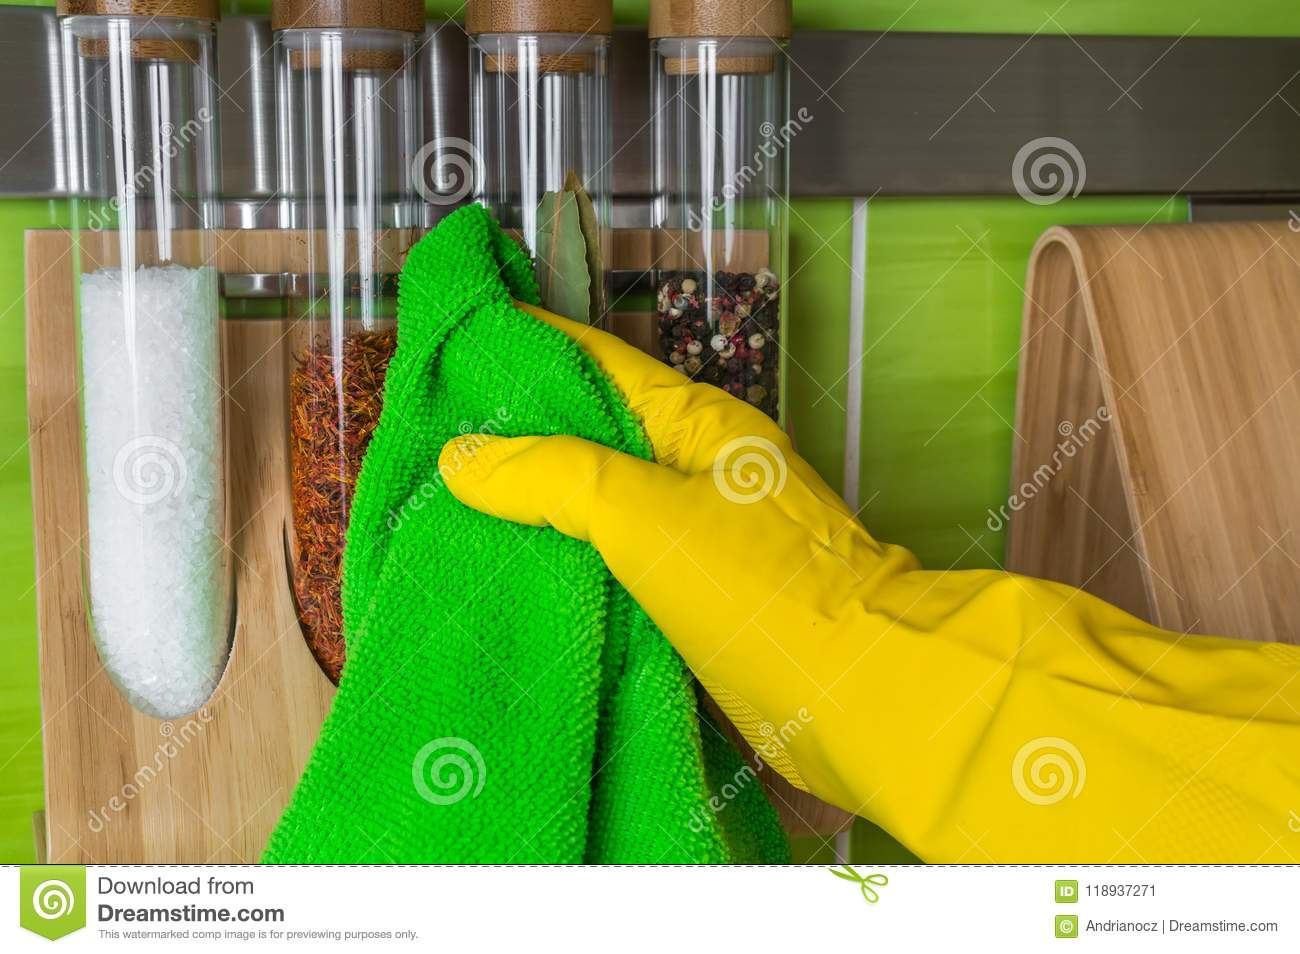 037c232d1dcdb Hand in glove with green rag is wiping spice bottles - housework and housekeeping  concept